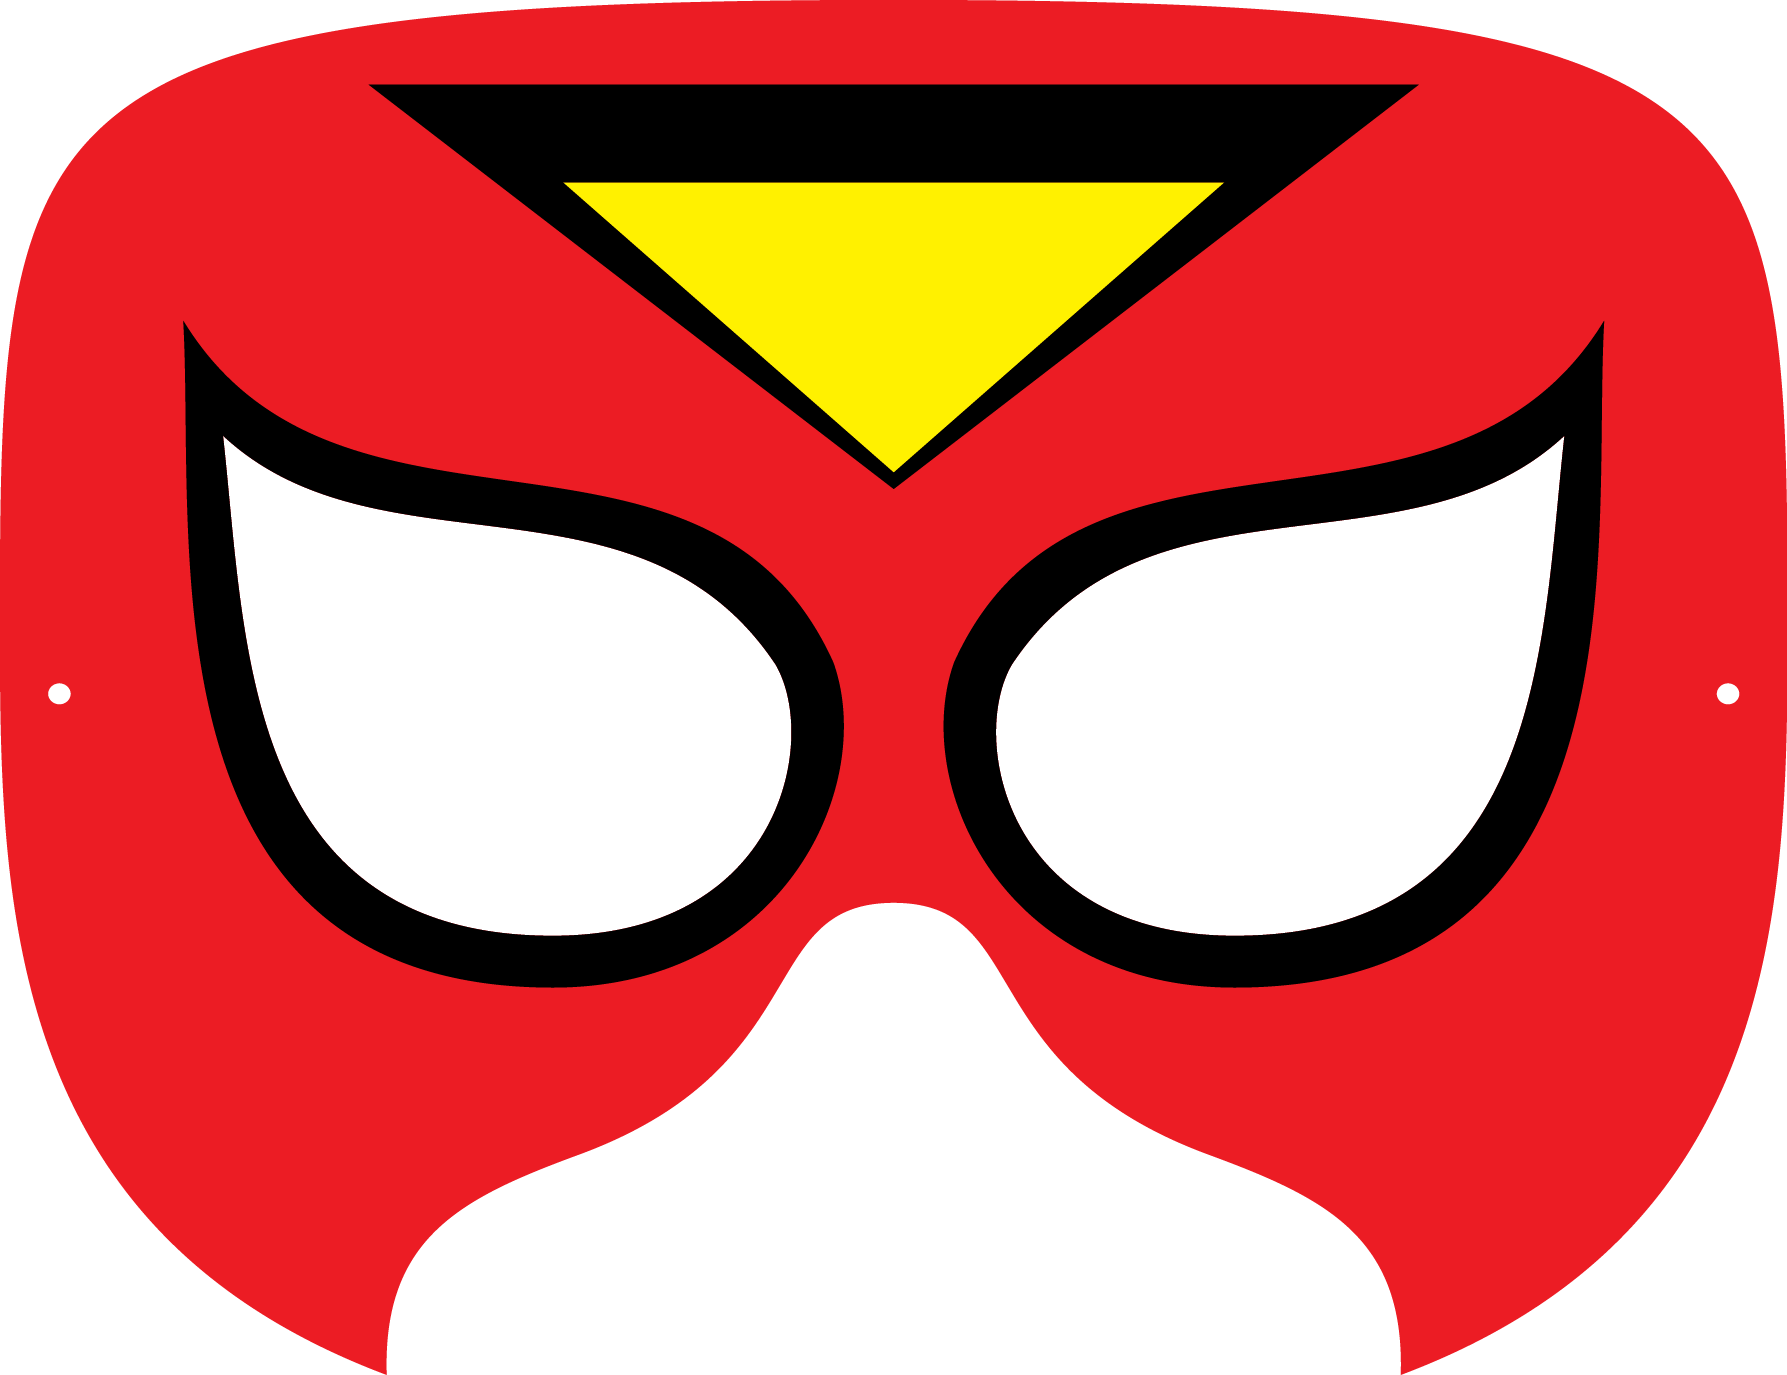 picture relating to Super Hero Printable Masks titled Superhero Mask Template Free of charge down load excellent Superhero Mask